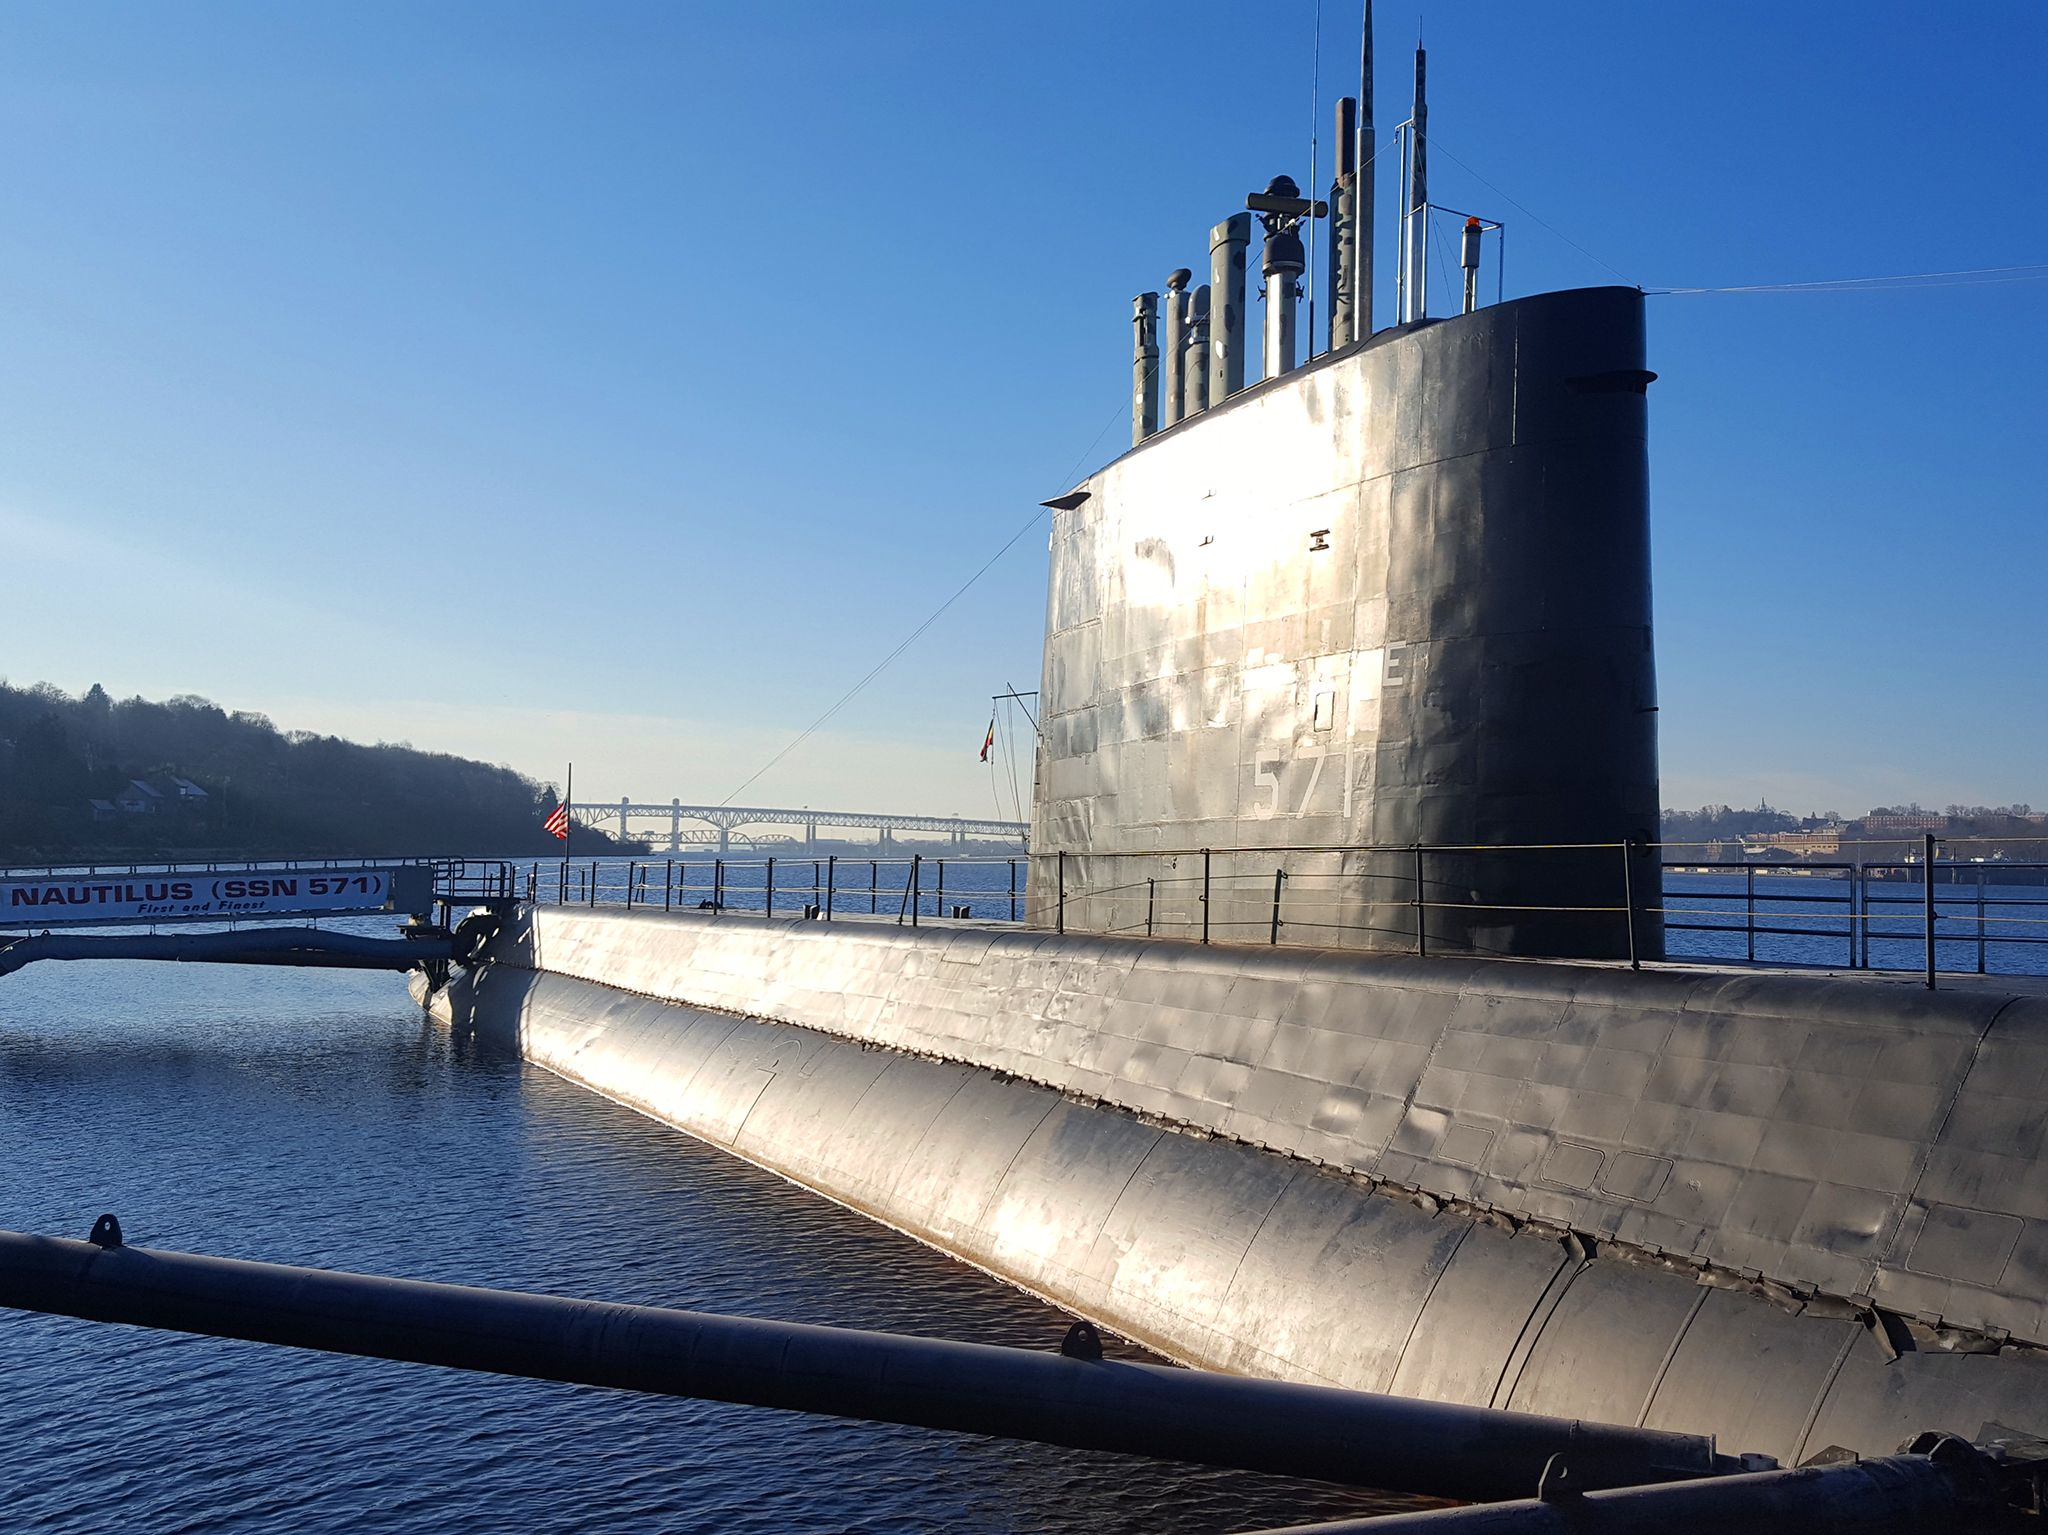 USS Nautilus:  the world's first nuclear-powered submarine.  This image is from Drain the Oceans. [Photo of the day - May 2020]